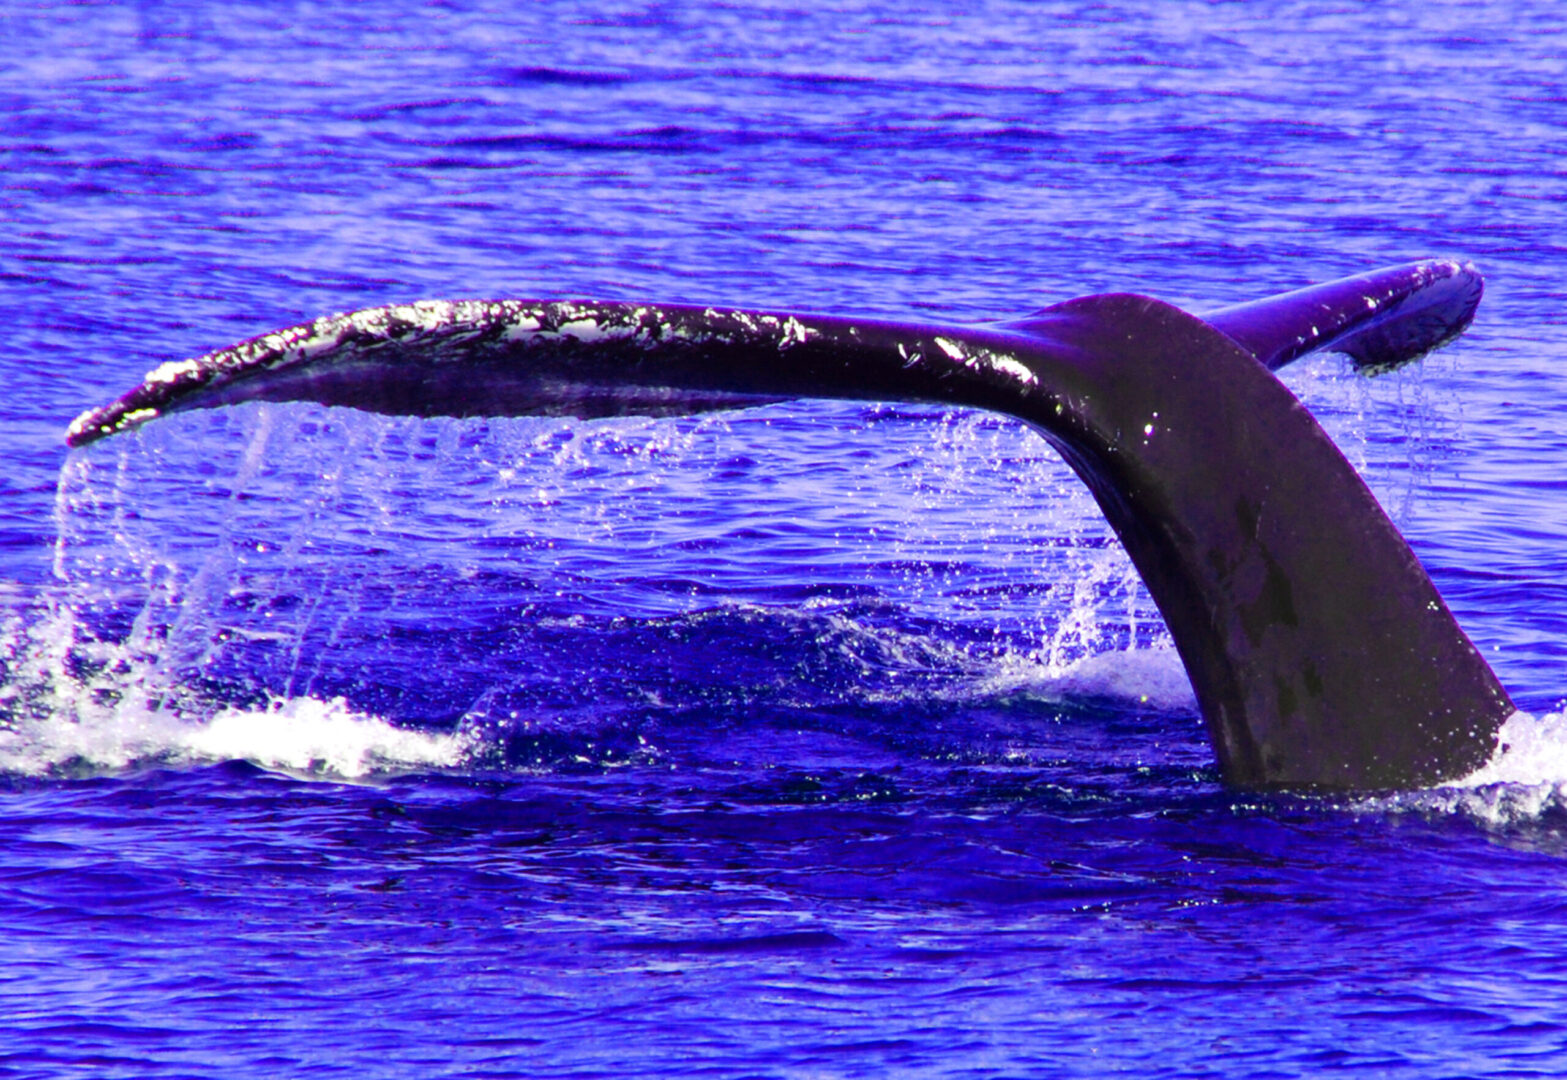 Whale of a Tail